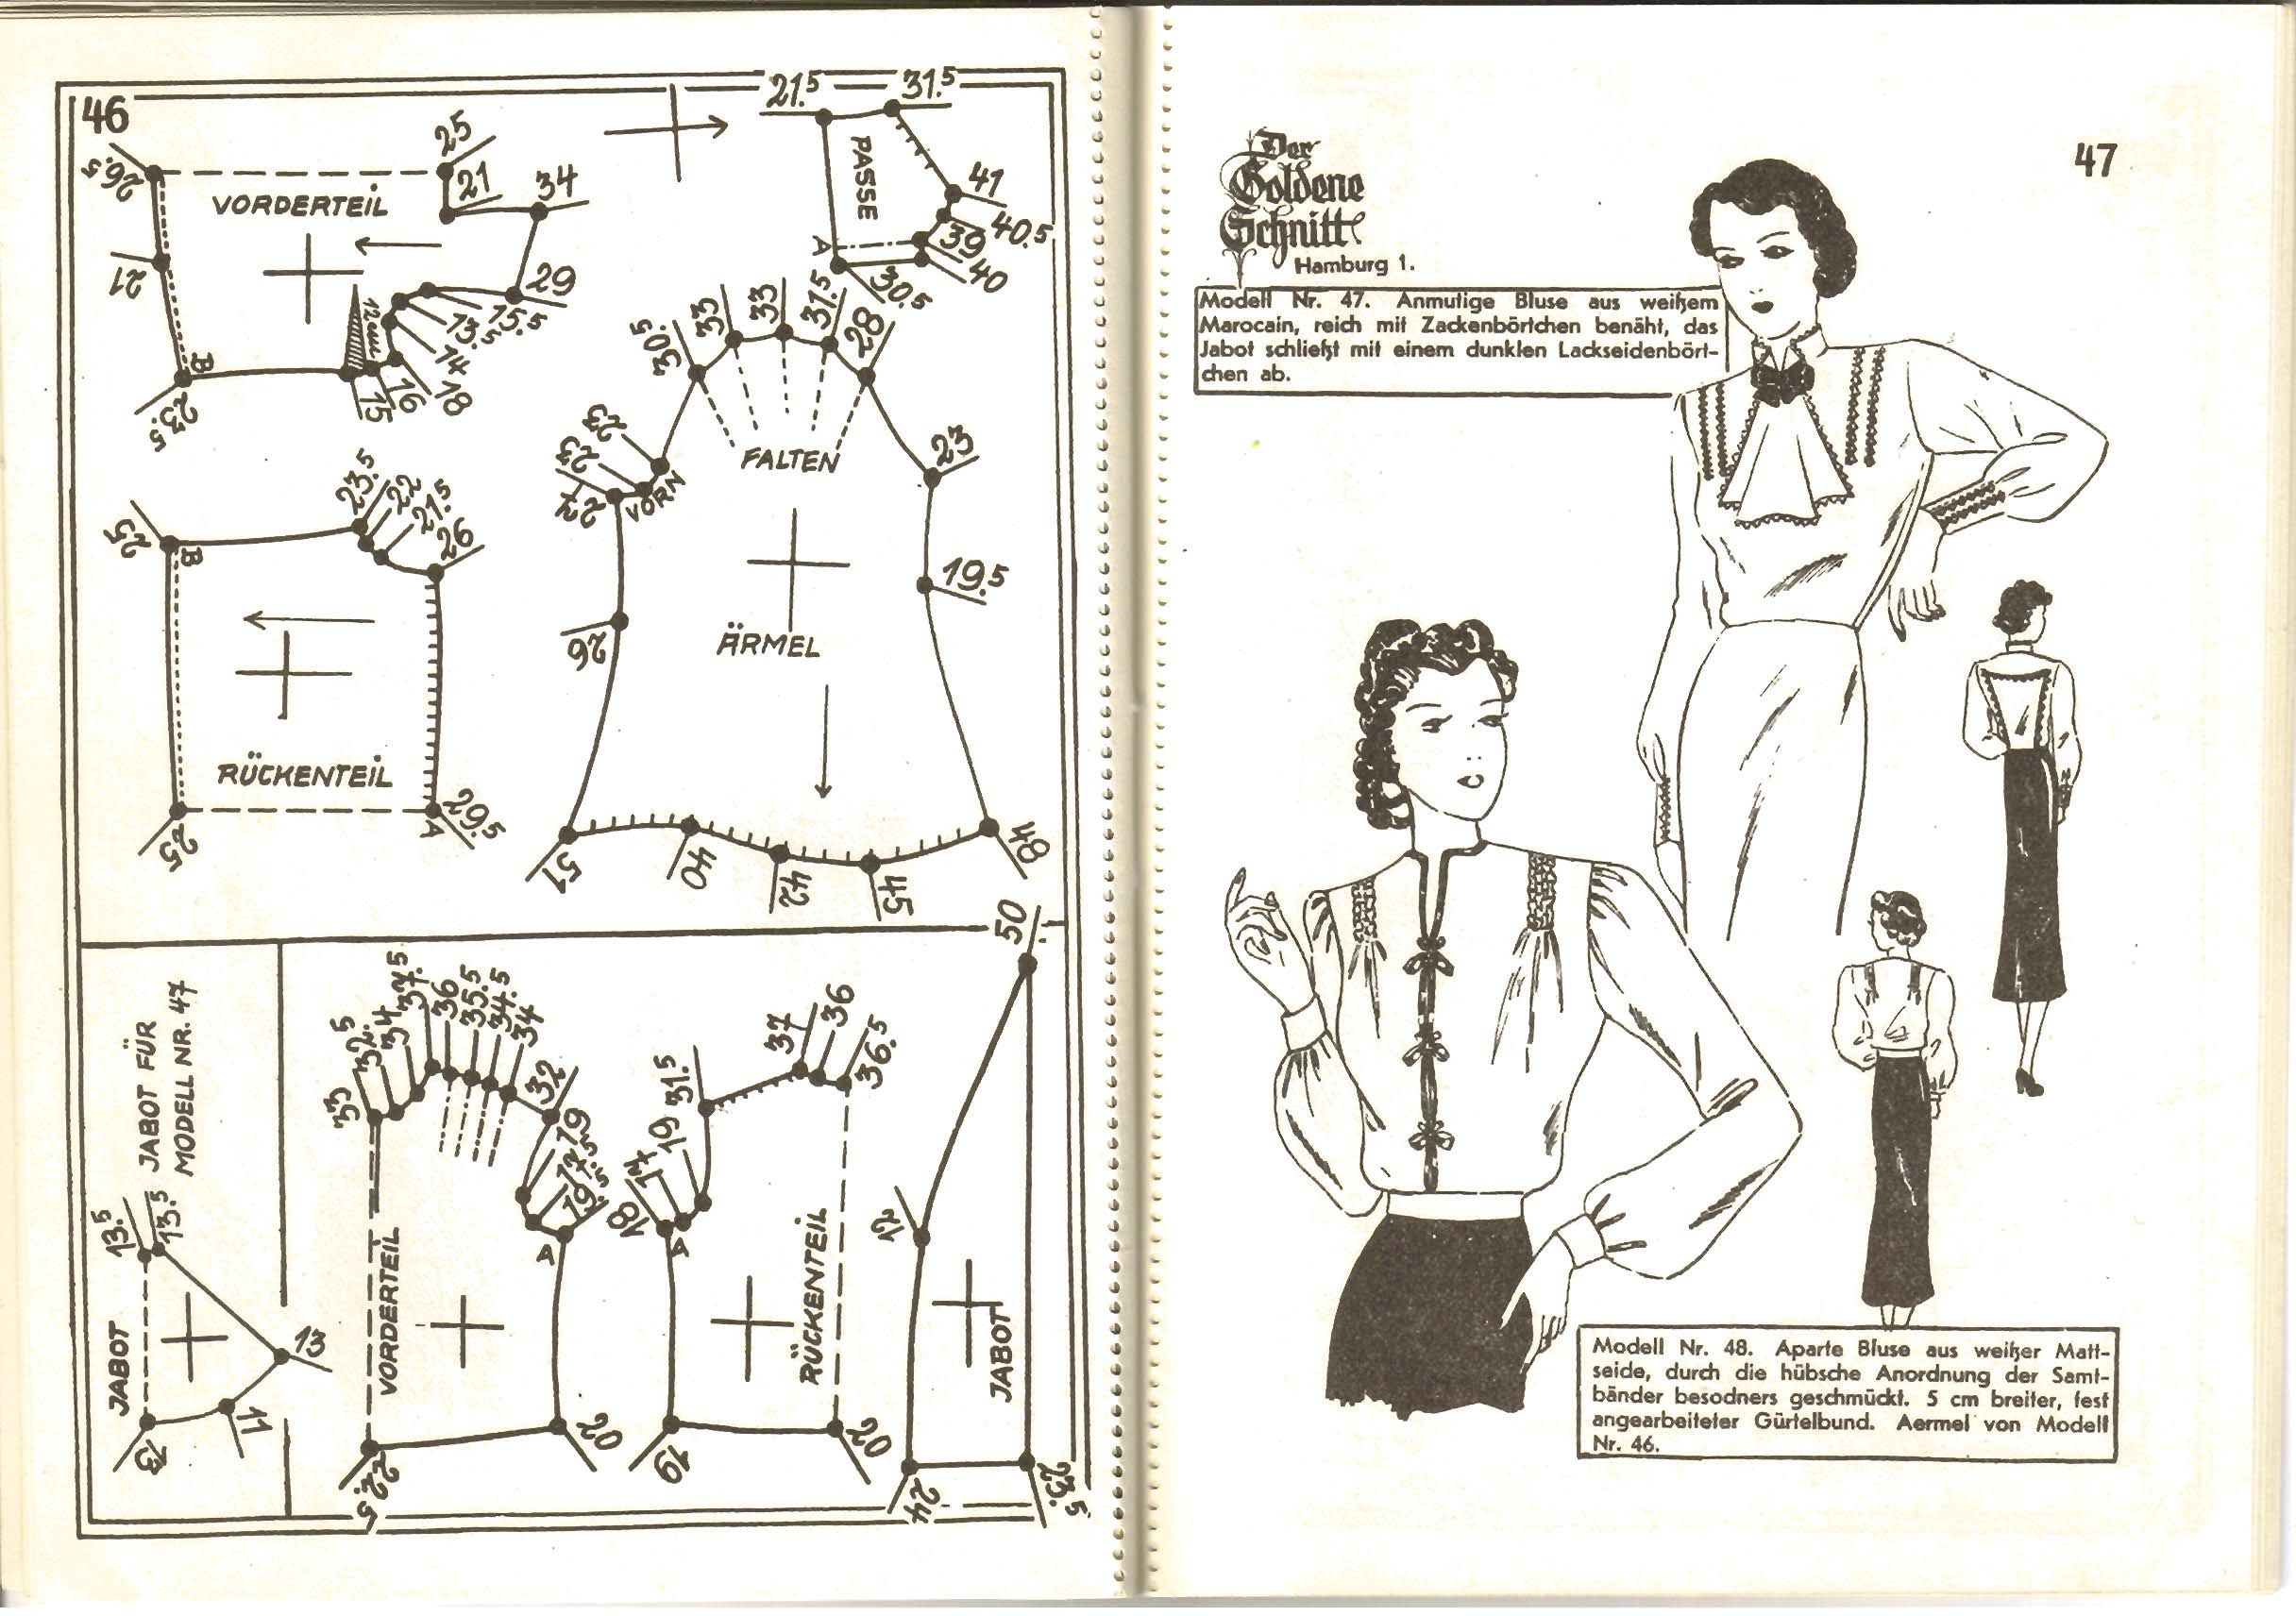 Lutterloh 1939 Book Of Cards - Models Diagram Card Page 46 & 47 ...